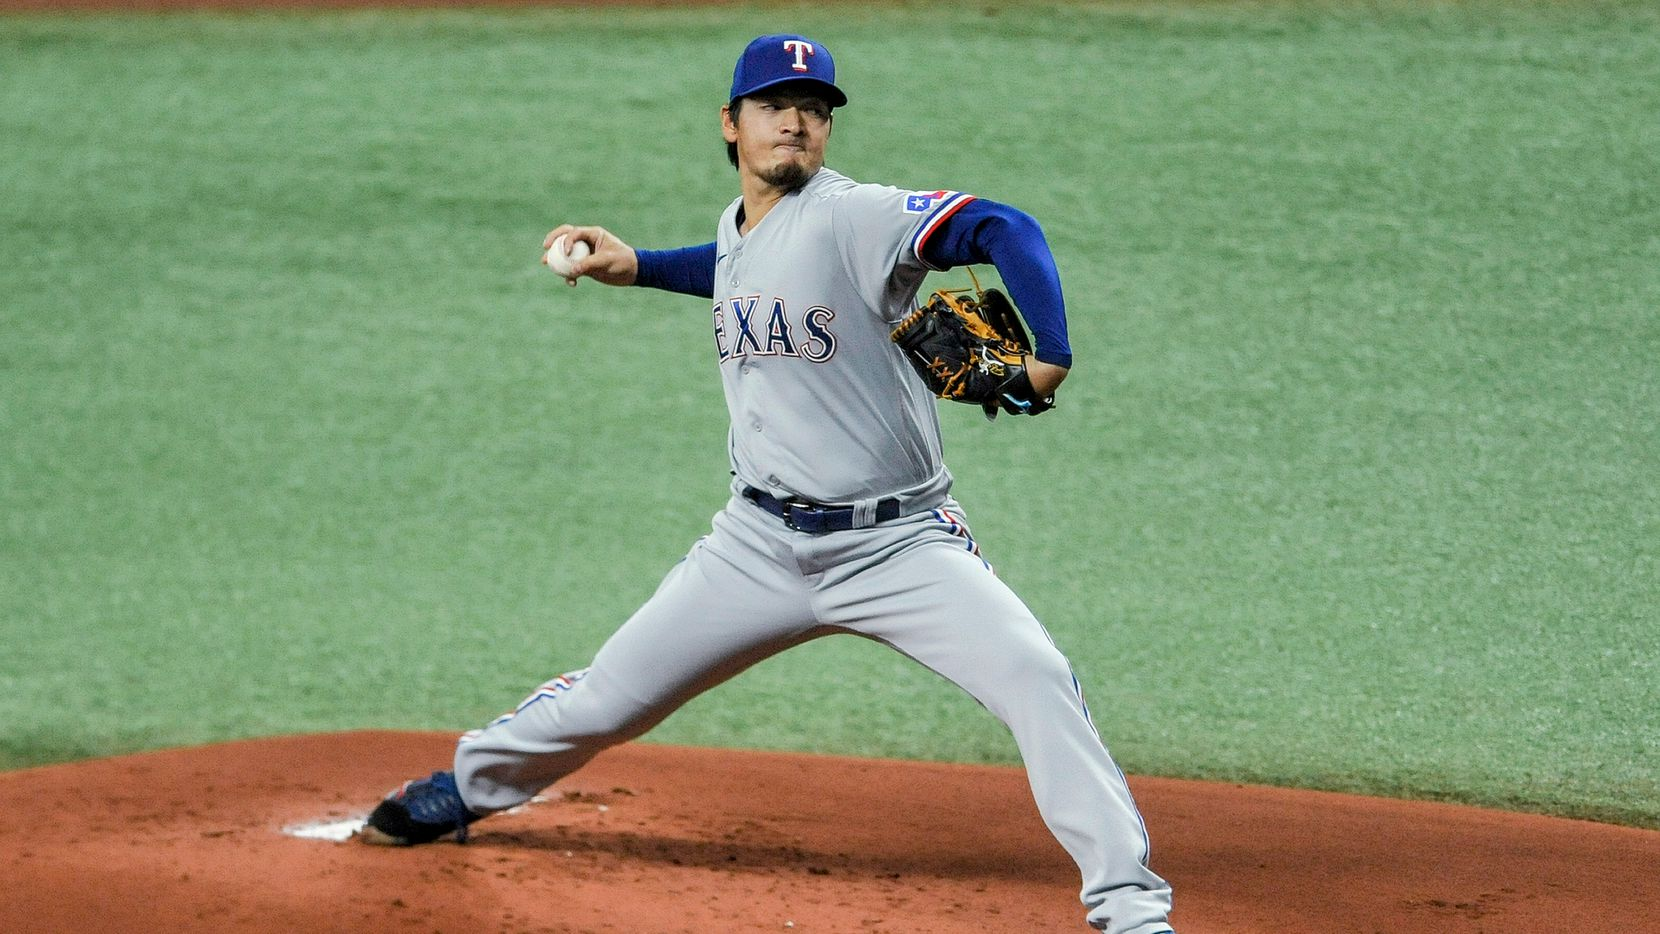 Texas Rangers starter Kohei Arihara pitches to a Tampa Bay Rays batter during the first inning of a baseball game Wednesday, April 14, 2021, in St. Petersburg, Fla. (AP Photo/Steve Nesius)